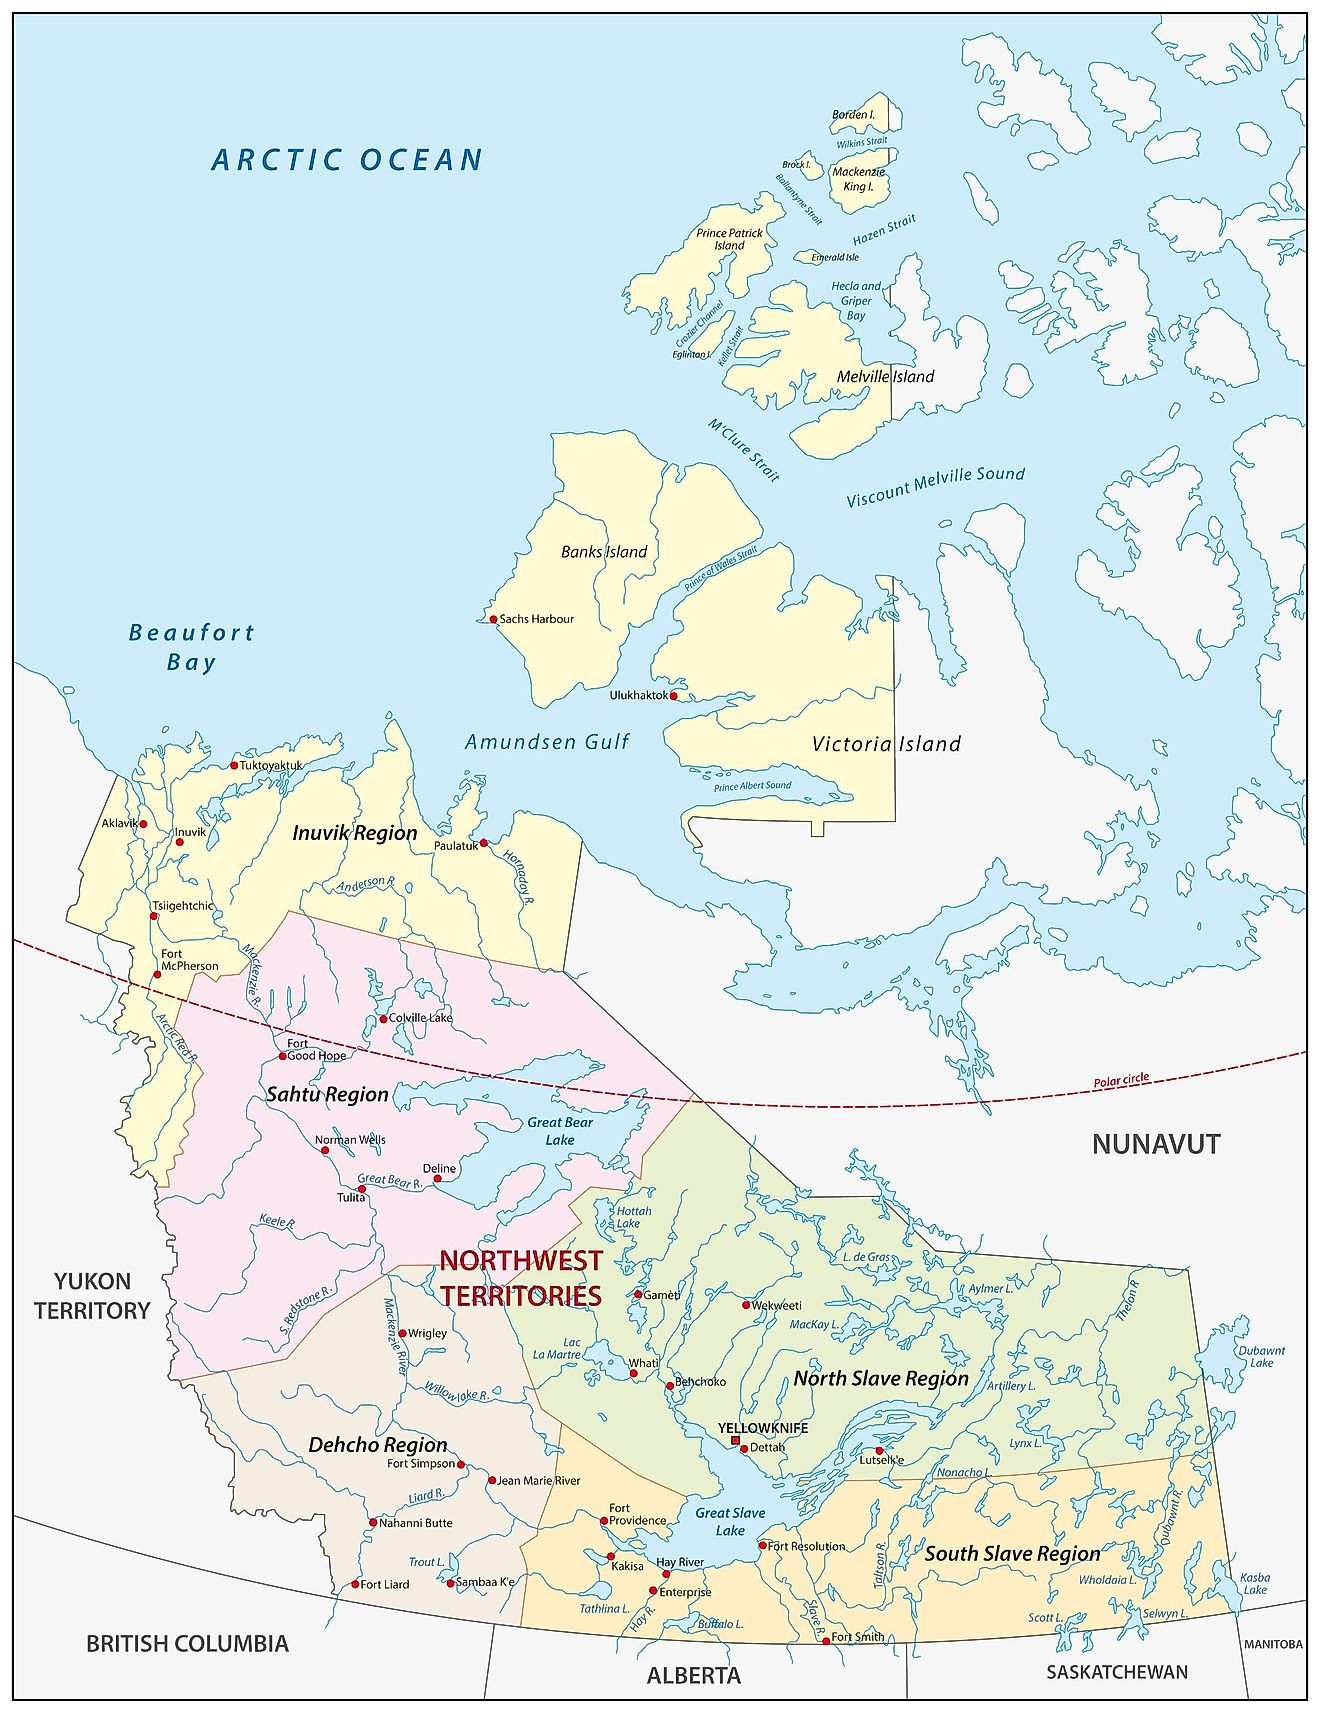 Administrative Map of Northwest Territories showing its administrative regions and the capital city - Yellowknife